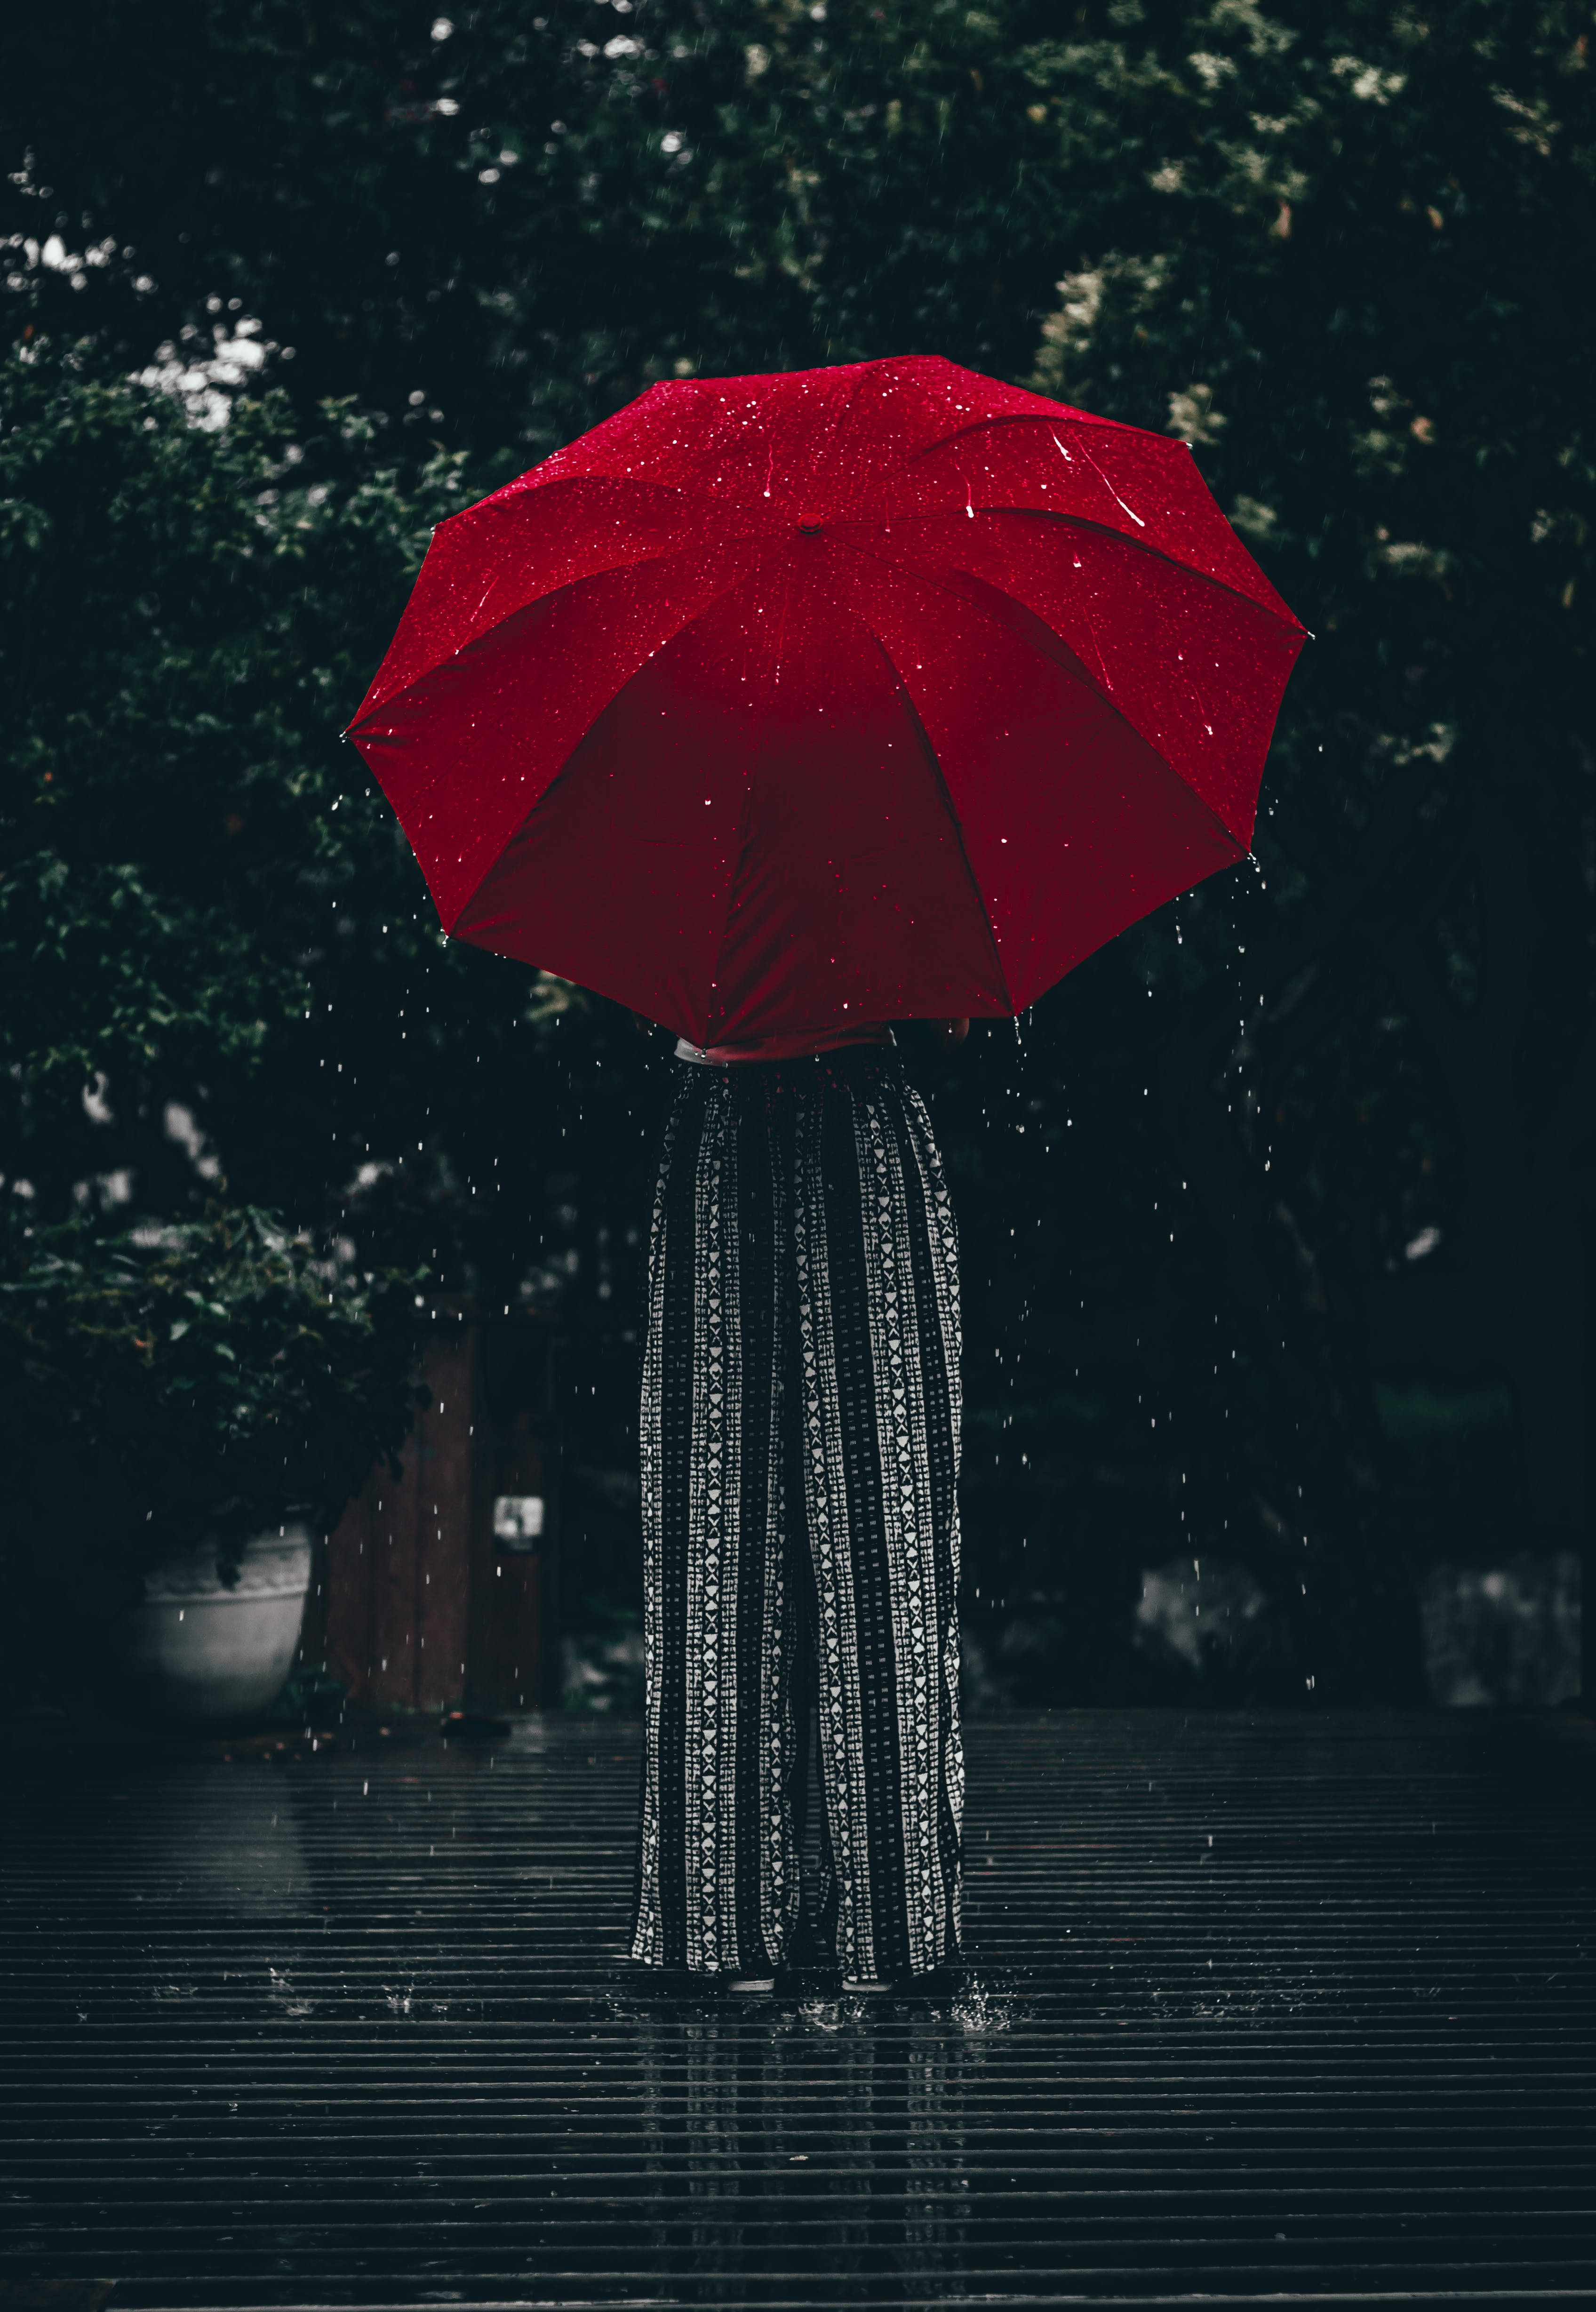 Person Standing Using Red Umbrella